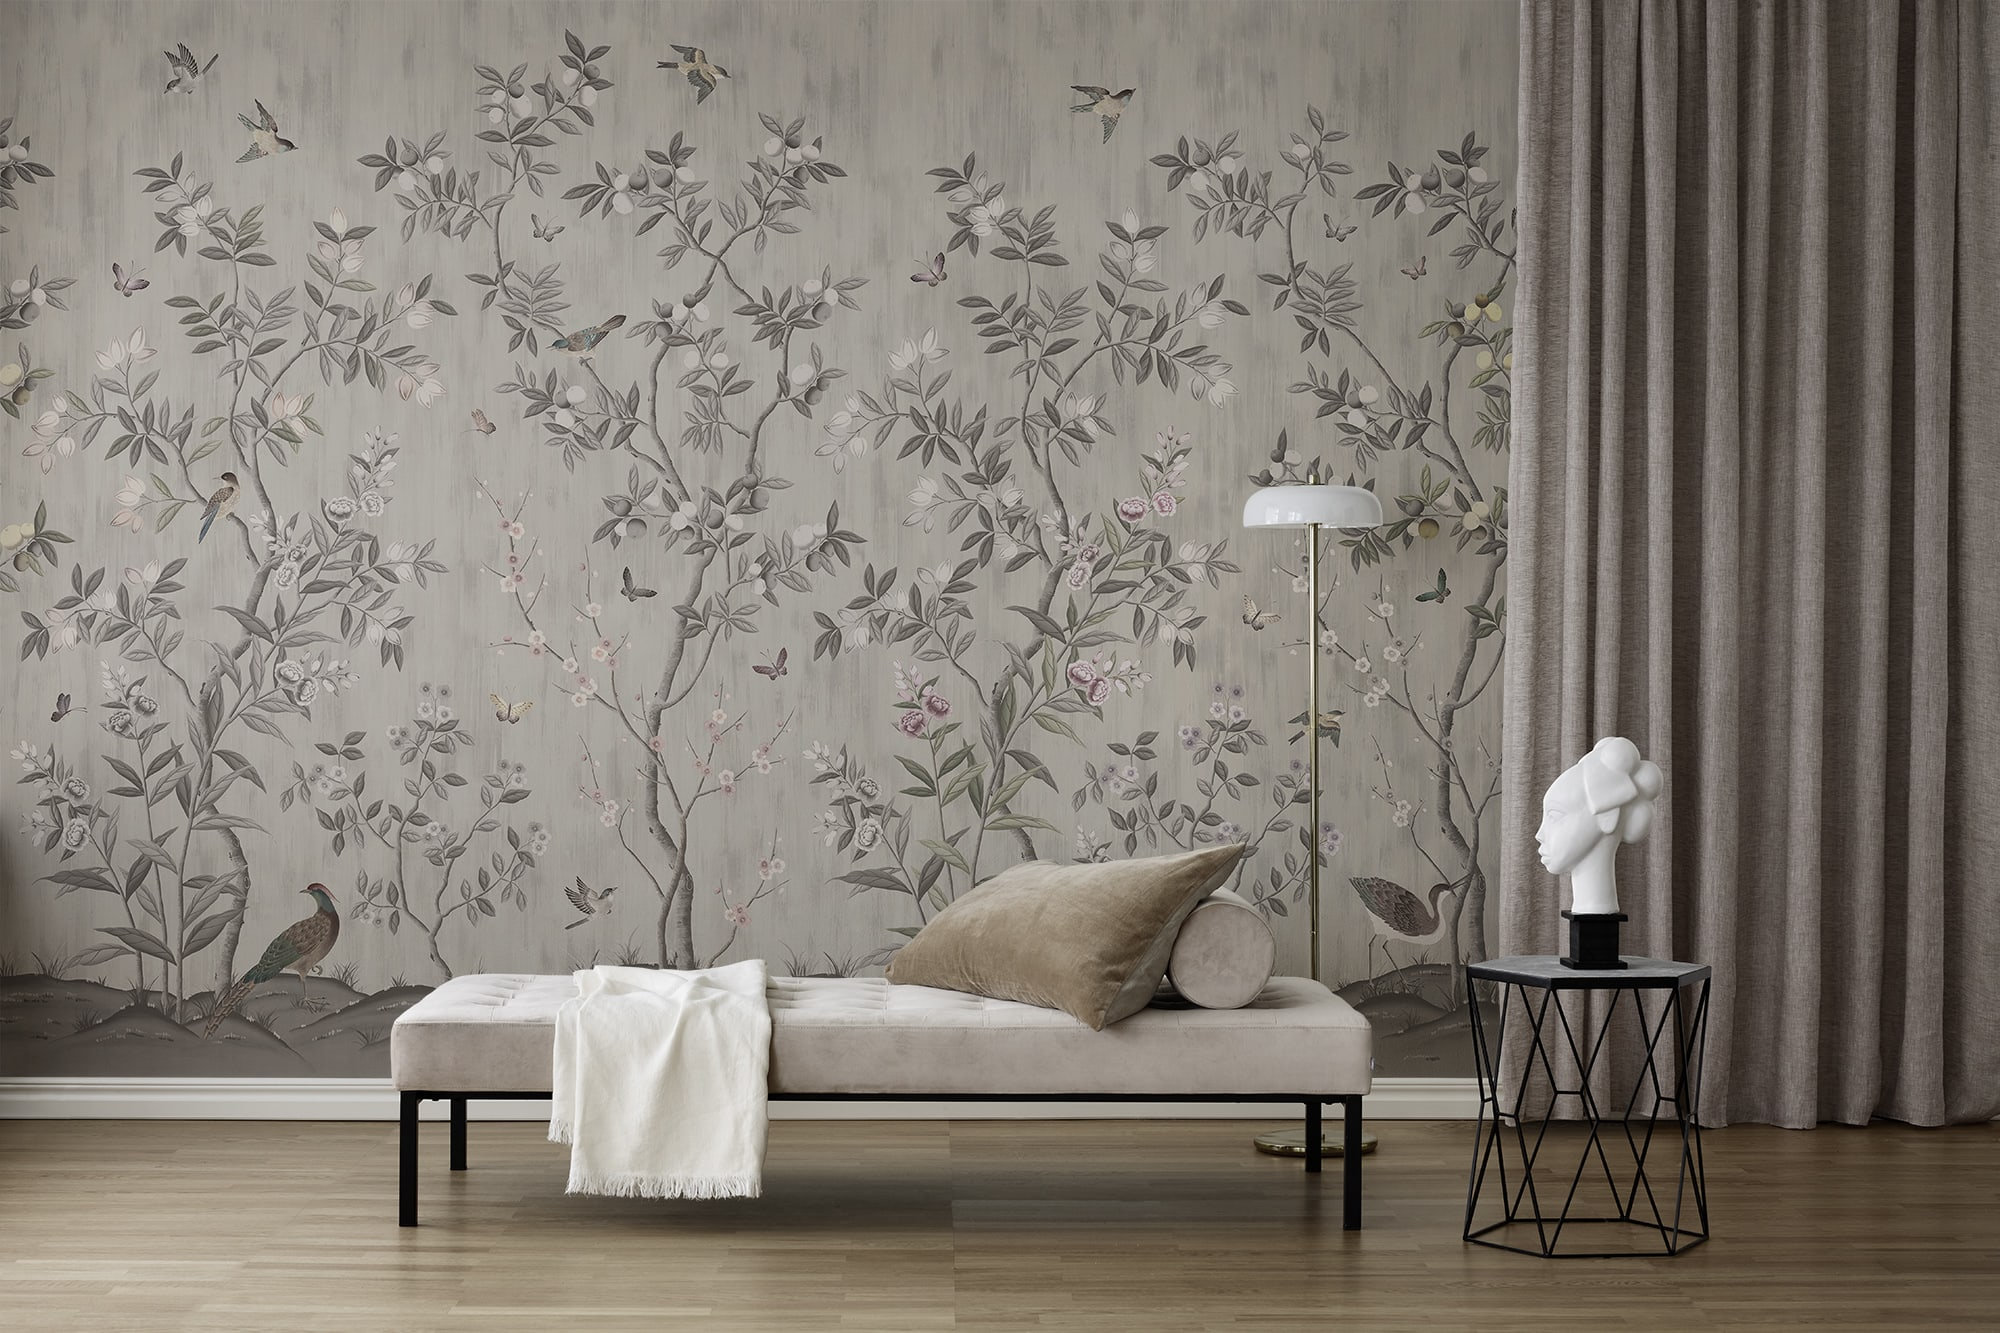 Lush Far East foliage and swirling butterflies